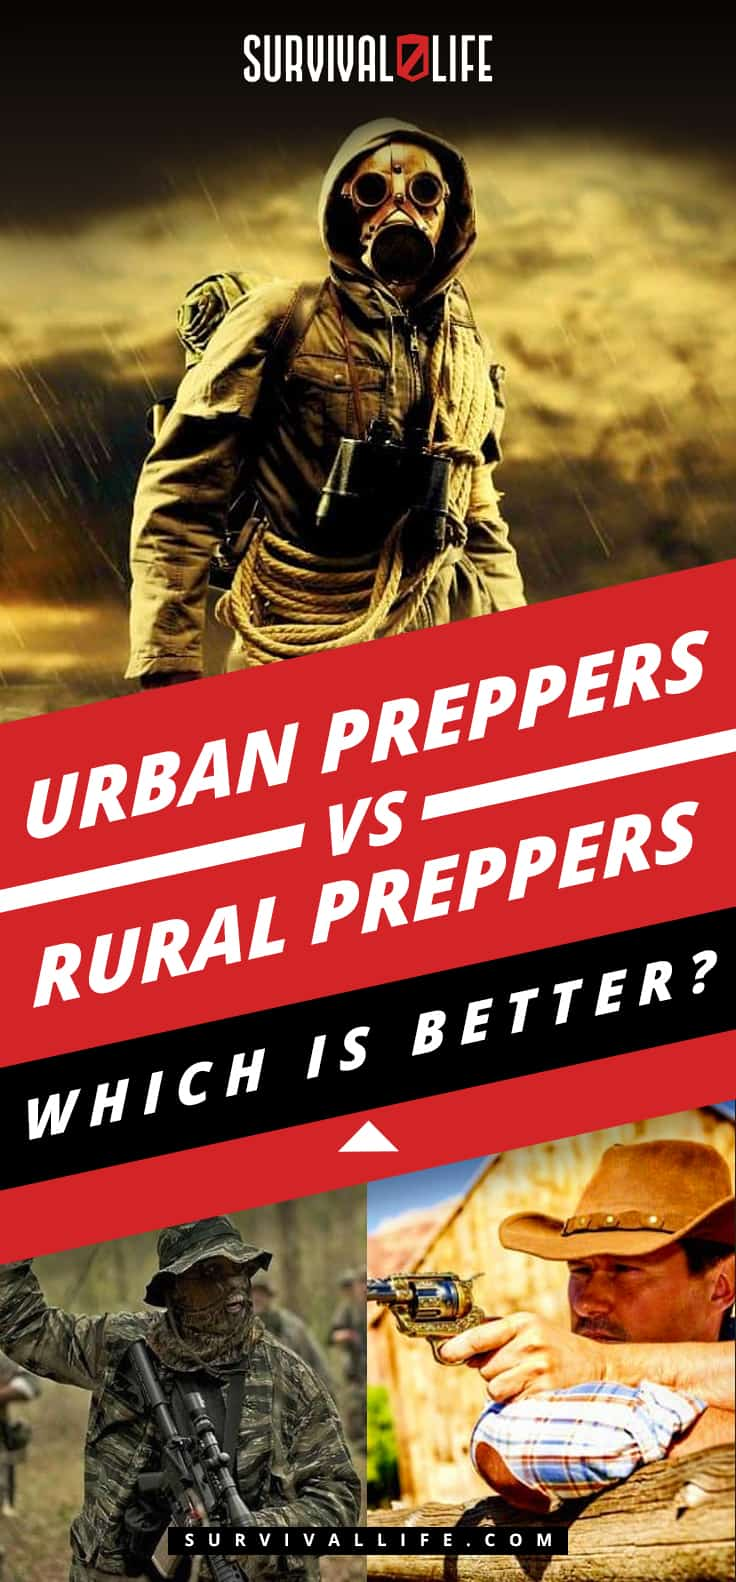 Urban Preppers vs Rural Preppers: Which Is Better?